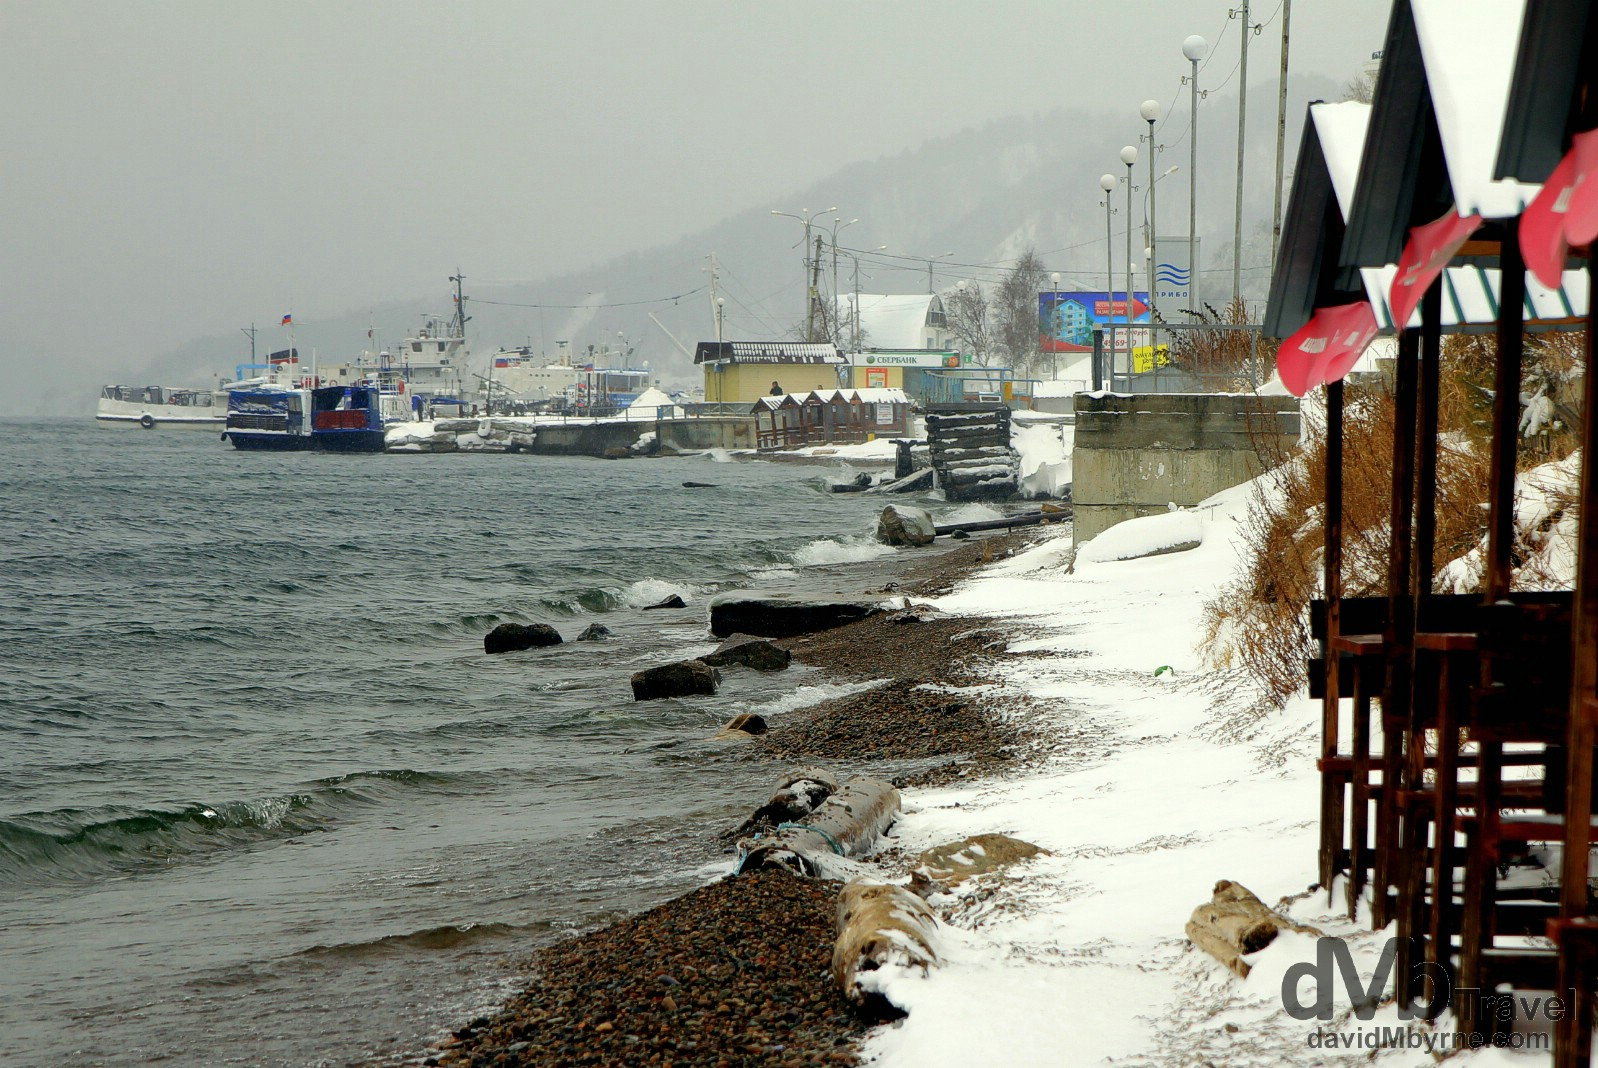 A wintry day on the shores of Lake Baikal from the village of Listvyanka, Irkutsk Oblat, Russia. November 9th 2012.